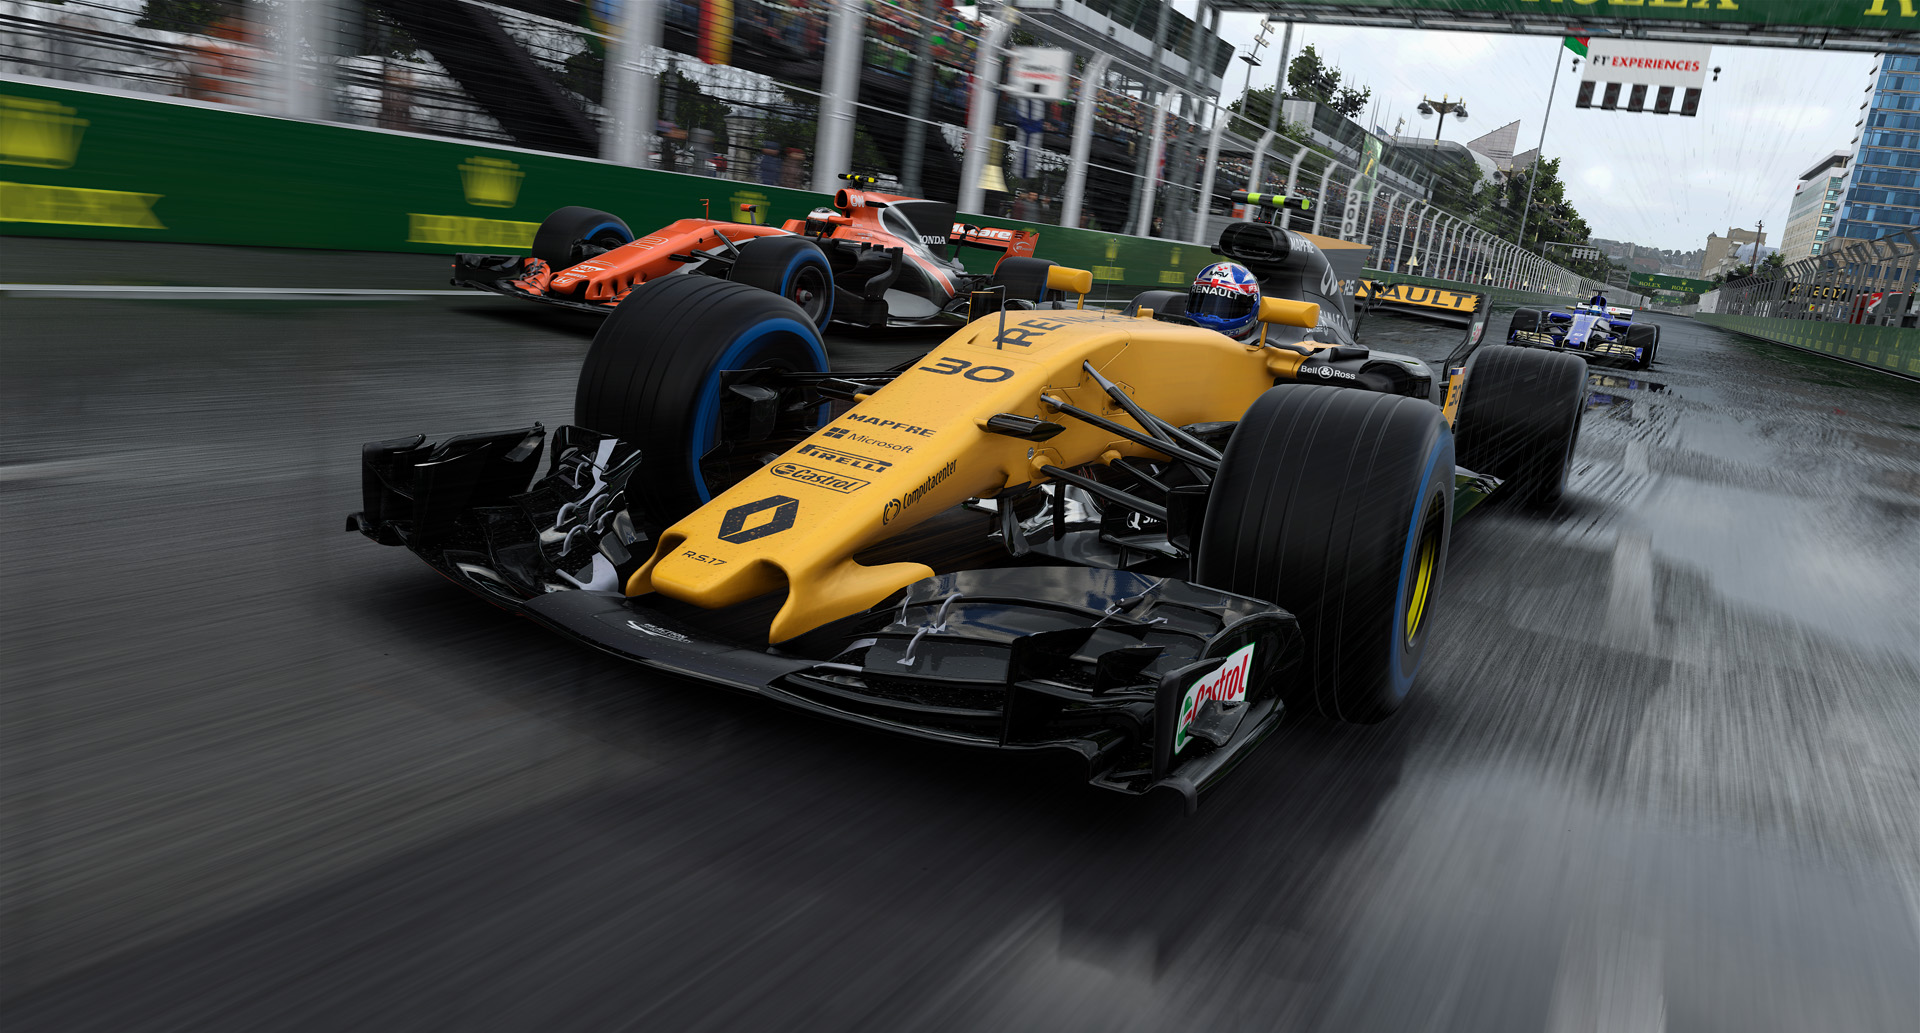 download f1 2017-cpy cracked full version singlelink iso rar multi 10 language free for pc